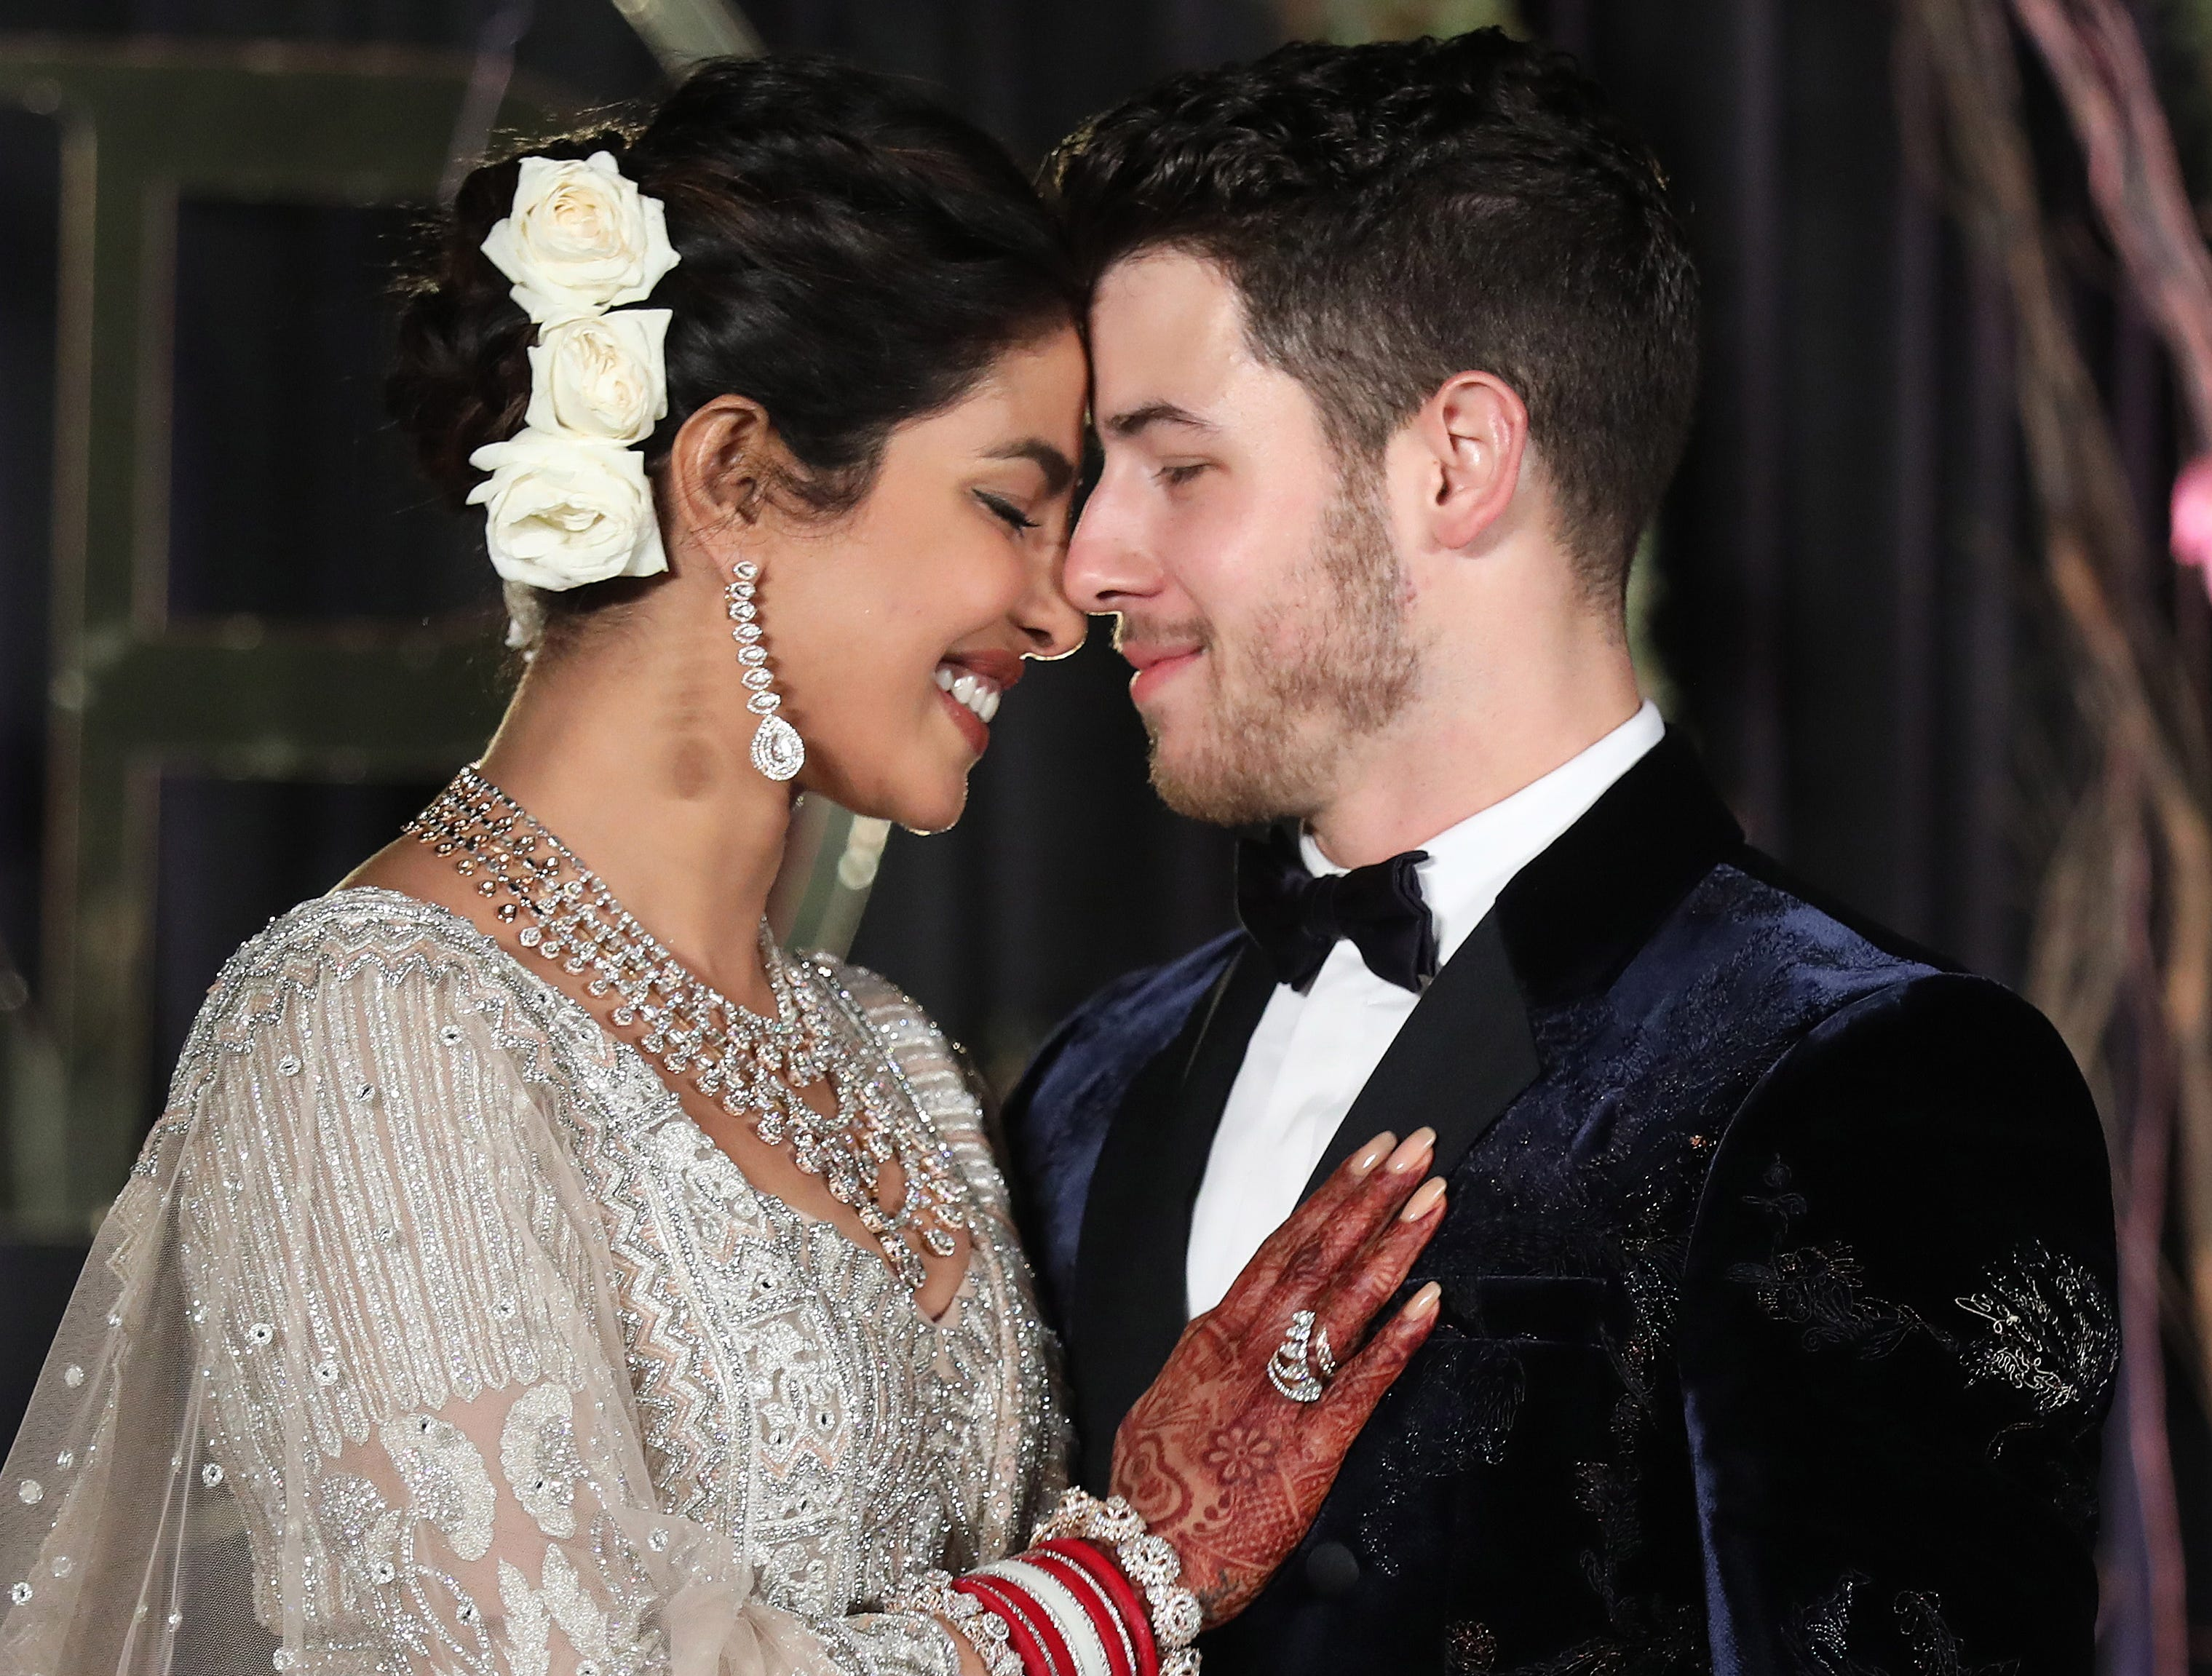 epa07208523 Newlyweds, Bollywood actress Priyanka Chopra (L) and US musician Nick Jonas (R) pose for photographs during a reception in New Delhi, India, 04 December 2018. According to media reports, the couple hosted wedding celebrations in Jodphur on 01 and 02 December.  EPA-EFE/RAJAT GUPTA